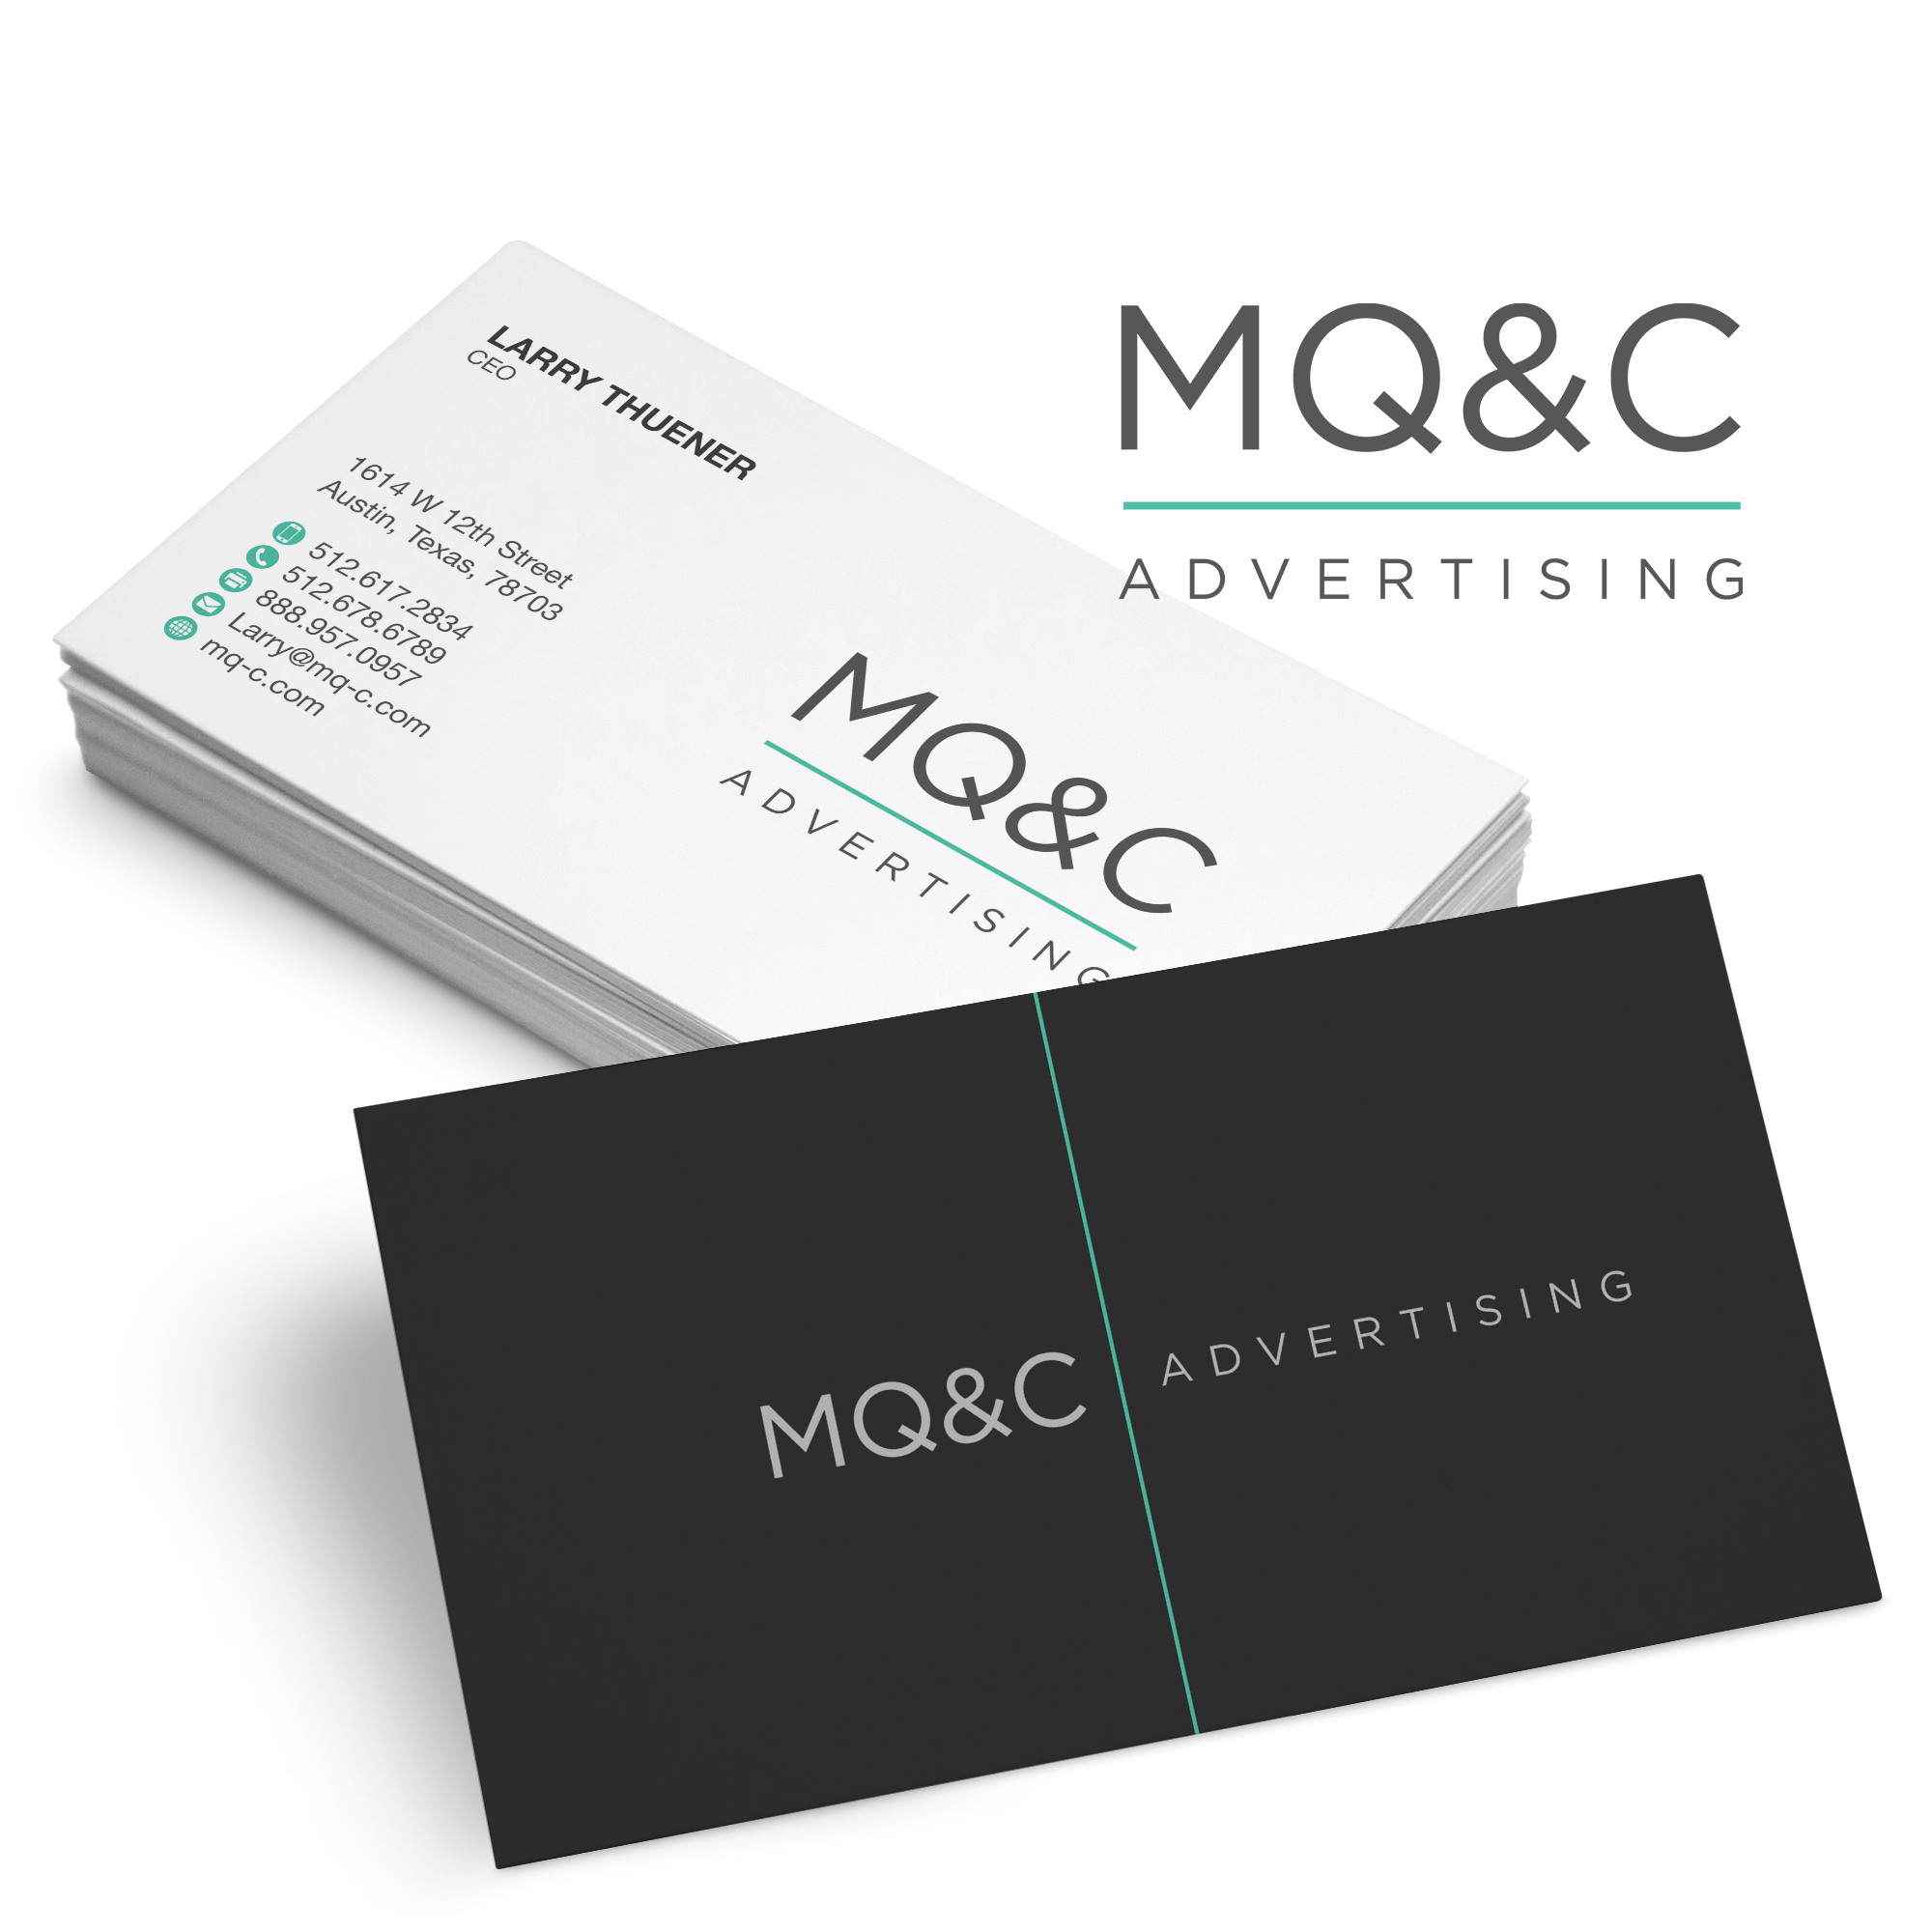 Business card logos get a custom logo for business cards 99designs logo business card design by bluemooon reheart Image collections